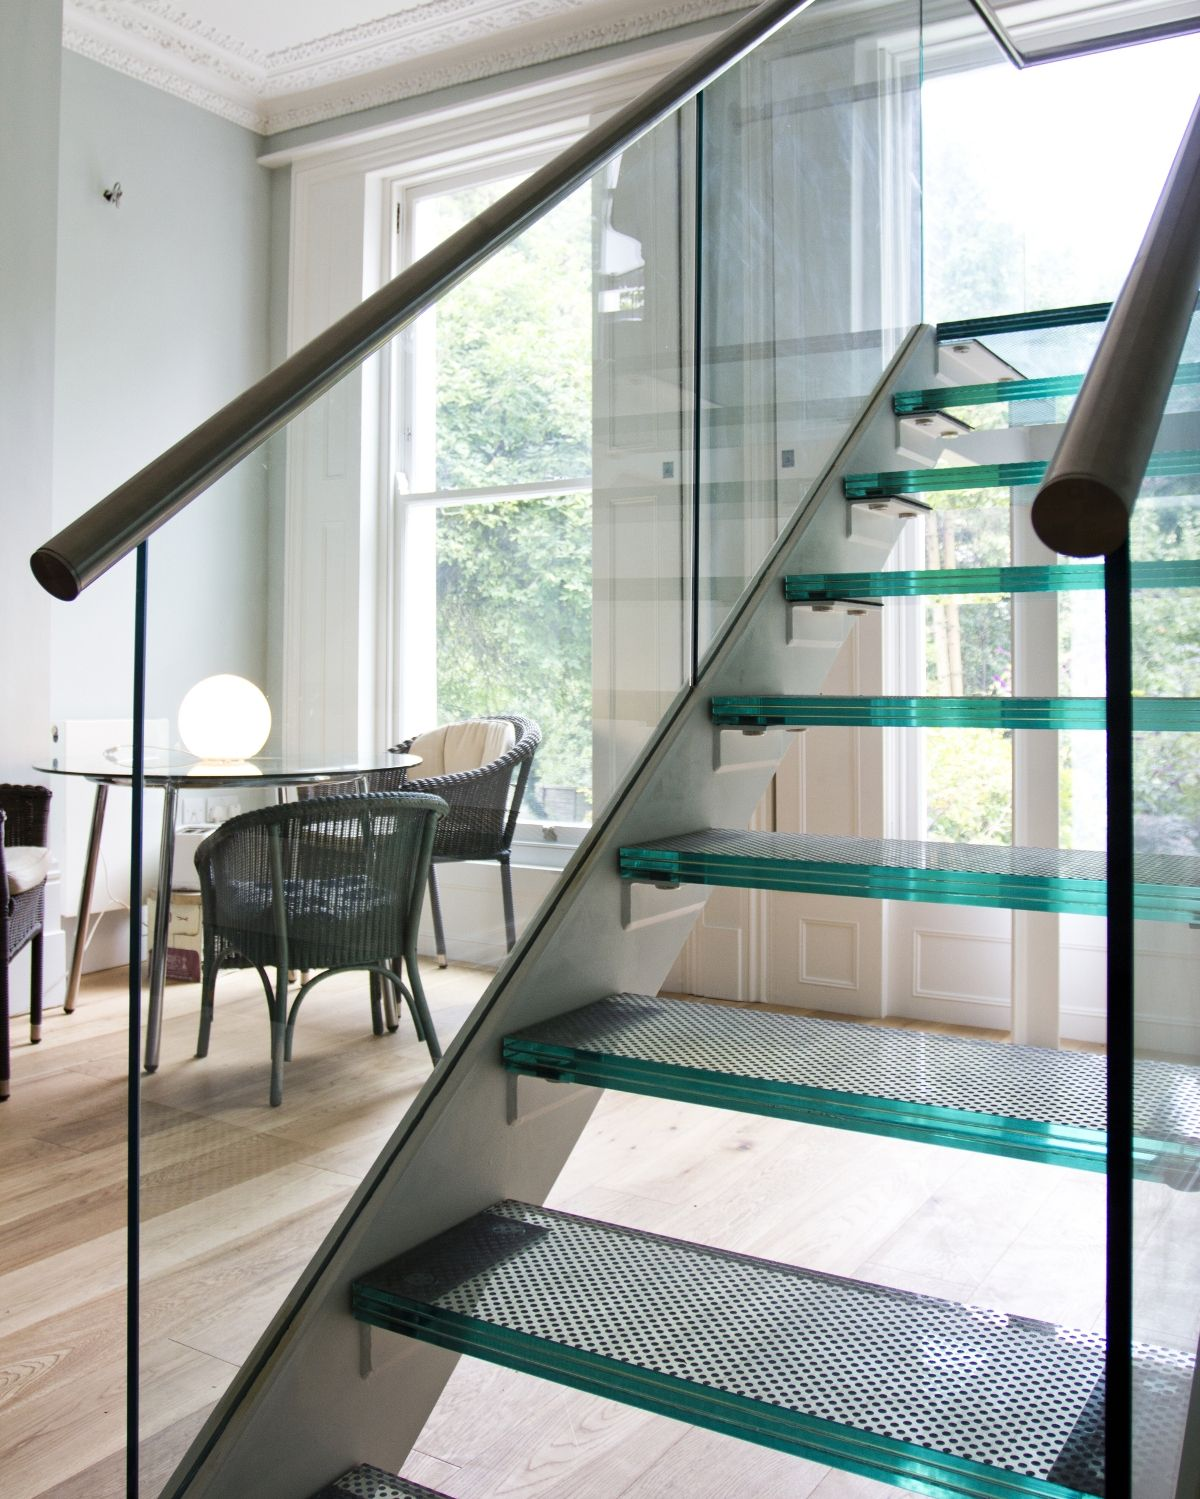 Decorating A Staircase Ideas Inspiration: Glass Staircase Window Design